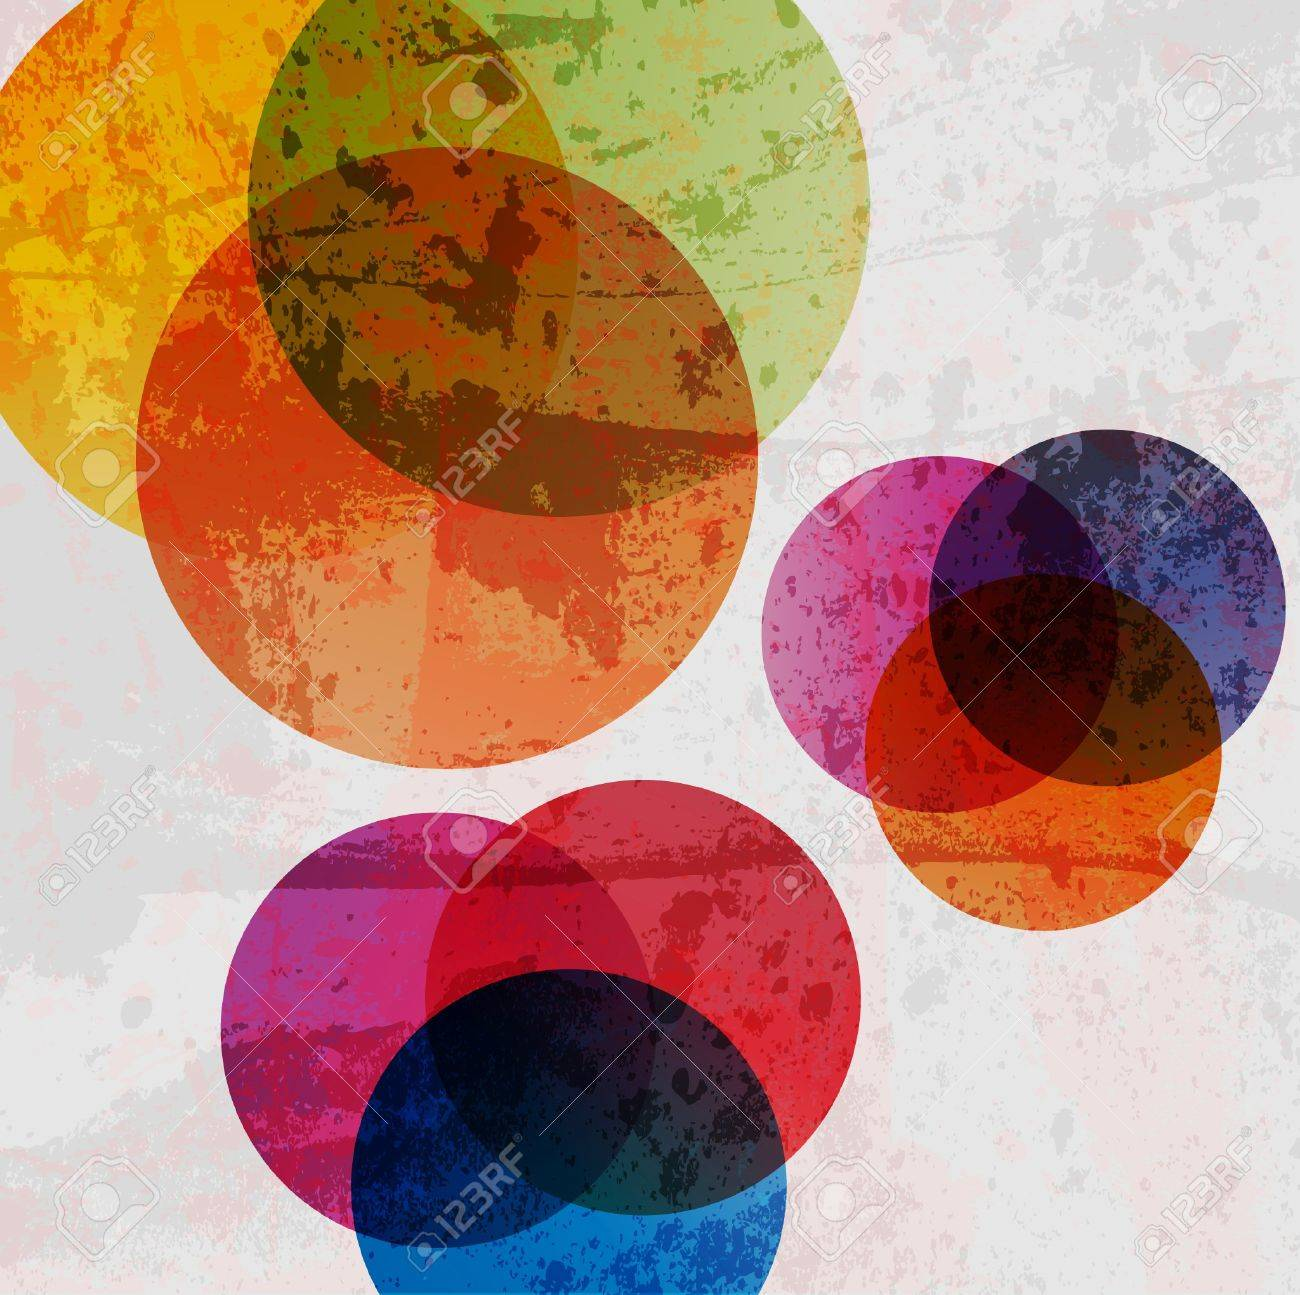 Retro modern abstraction in color. Abstract Vector Background Stock Vector - 10340647